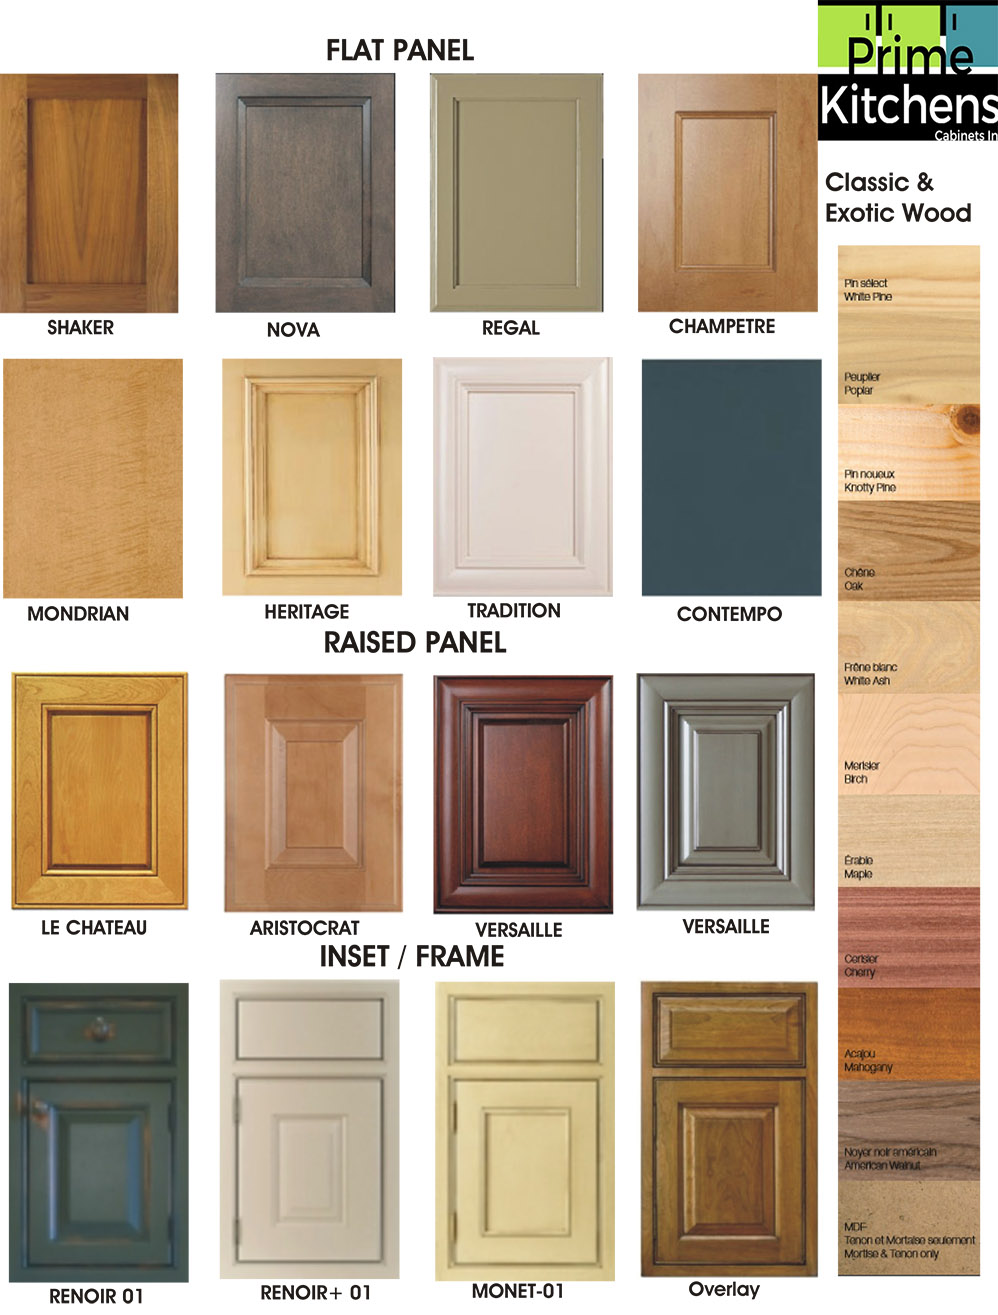 Wood doors kitchen cabinets in montreal for Kitchen cabinets montreal